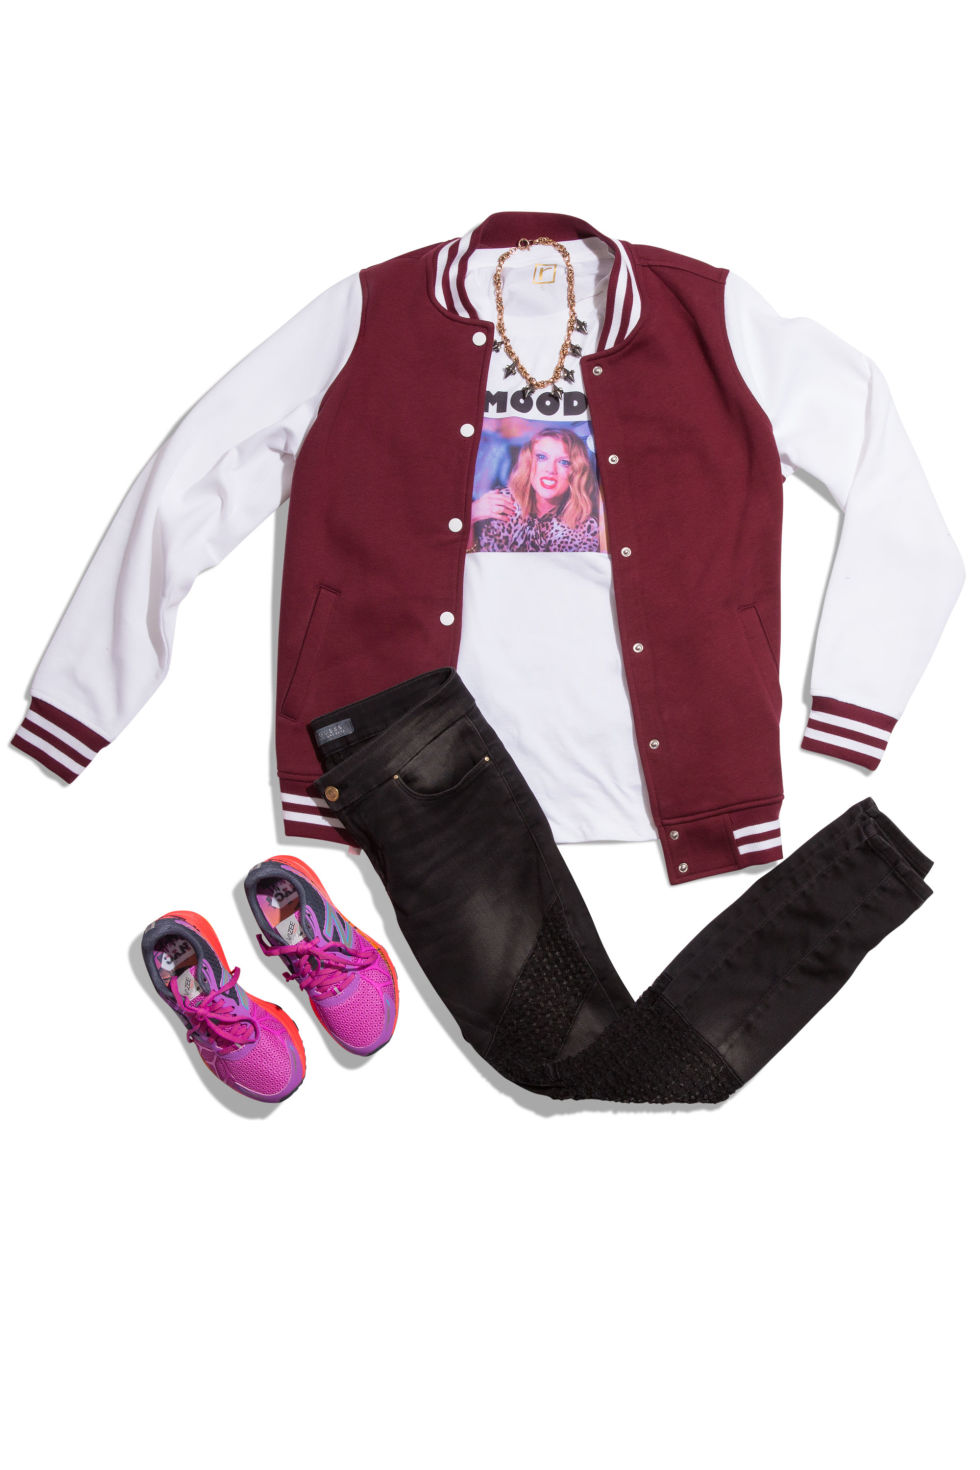 black-skinny-jeans-white-tee-burgundy-jacket-bomber-magenta-shoe-sneakers-howtowear-fashion-style-outfit-fall-winter-graphic-varsity-necklace-weekend.jpg